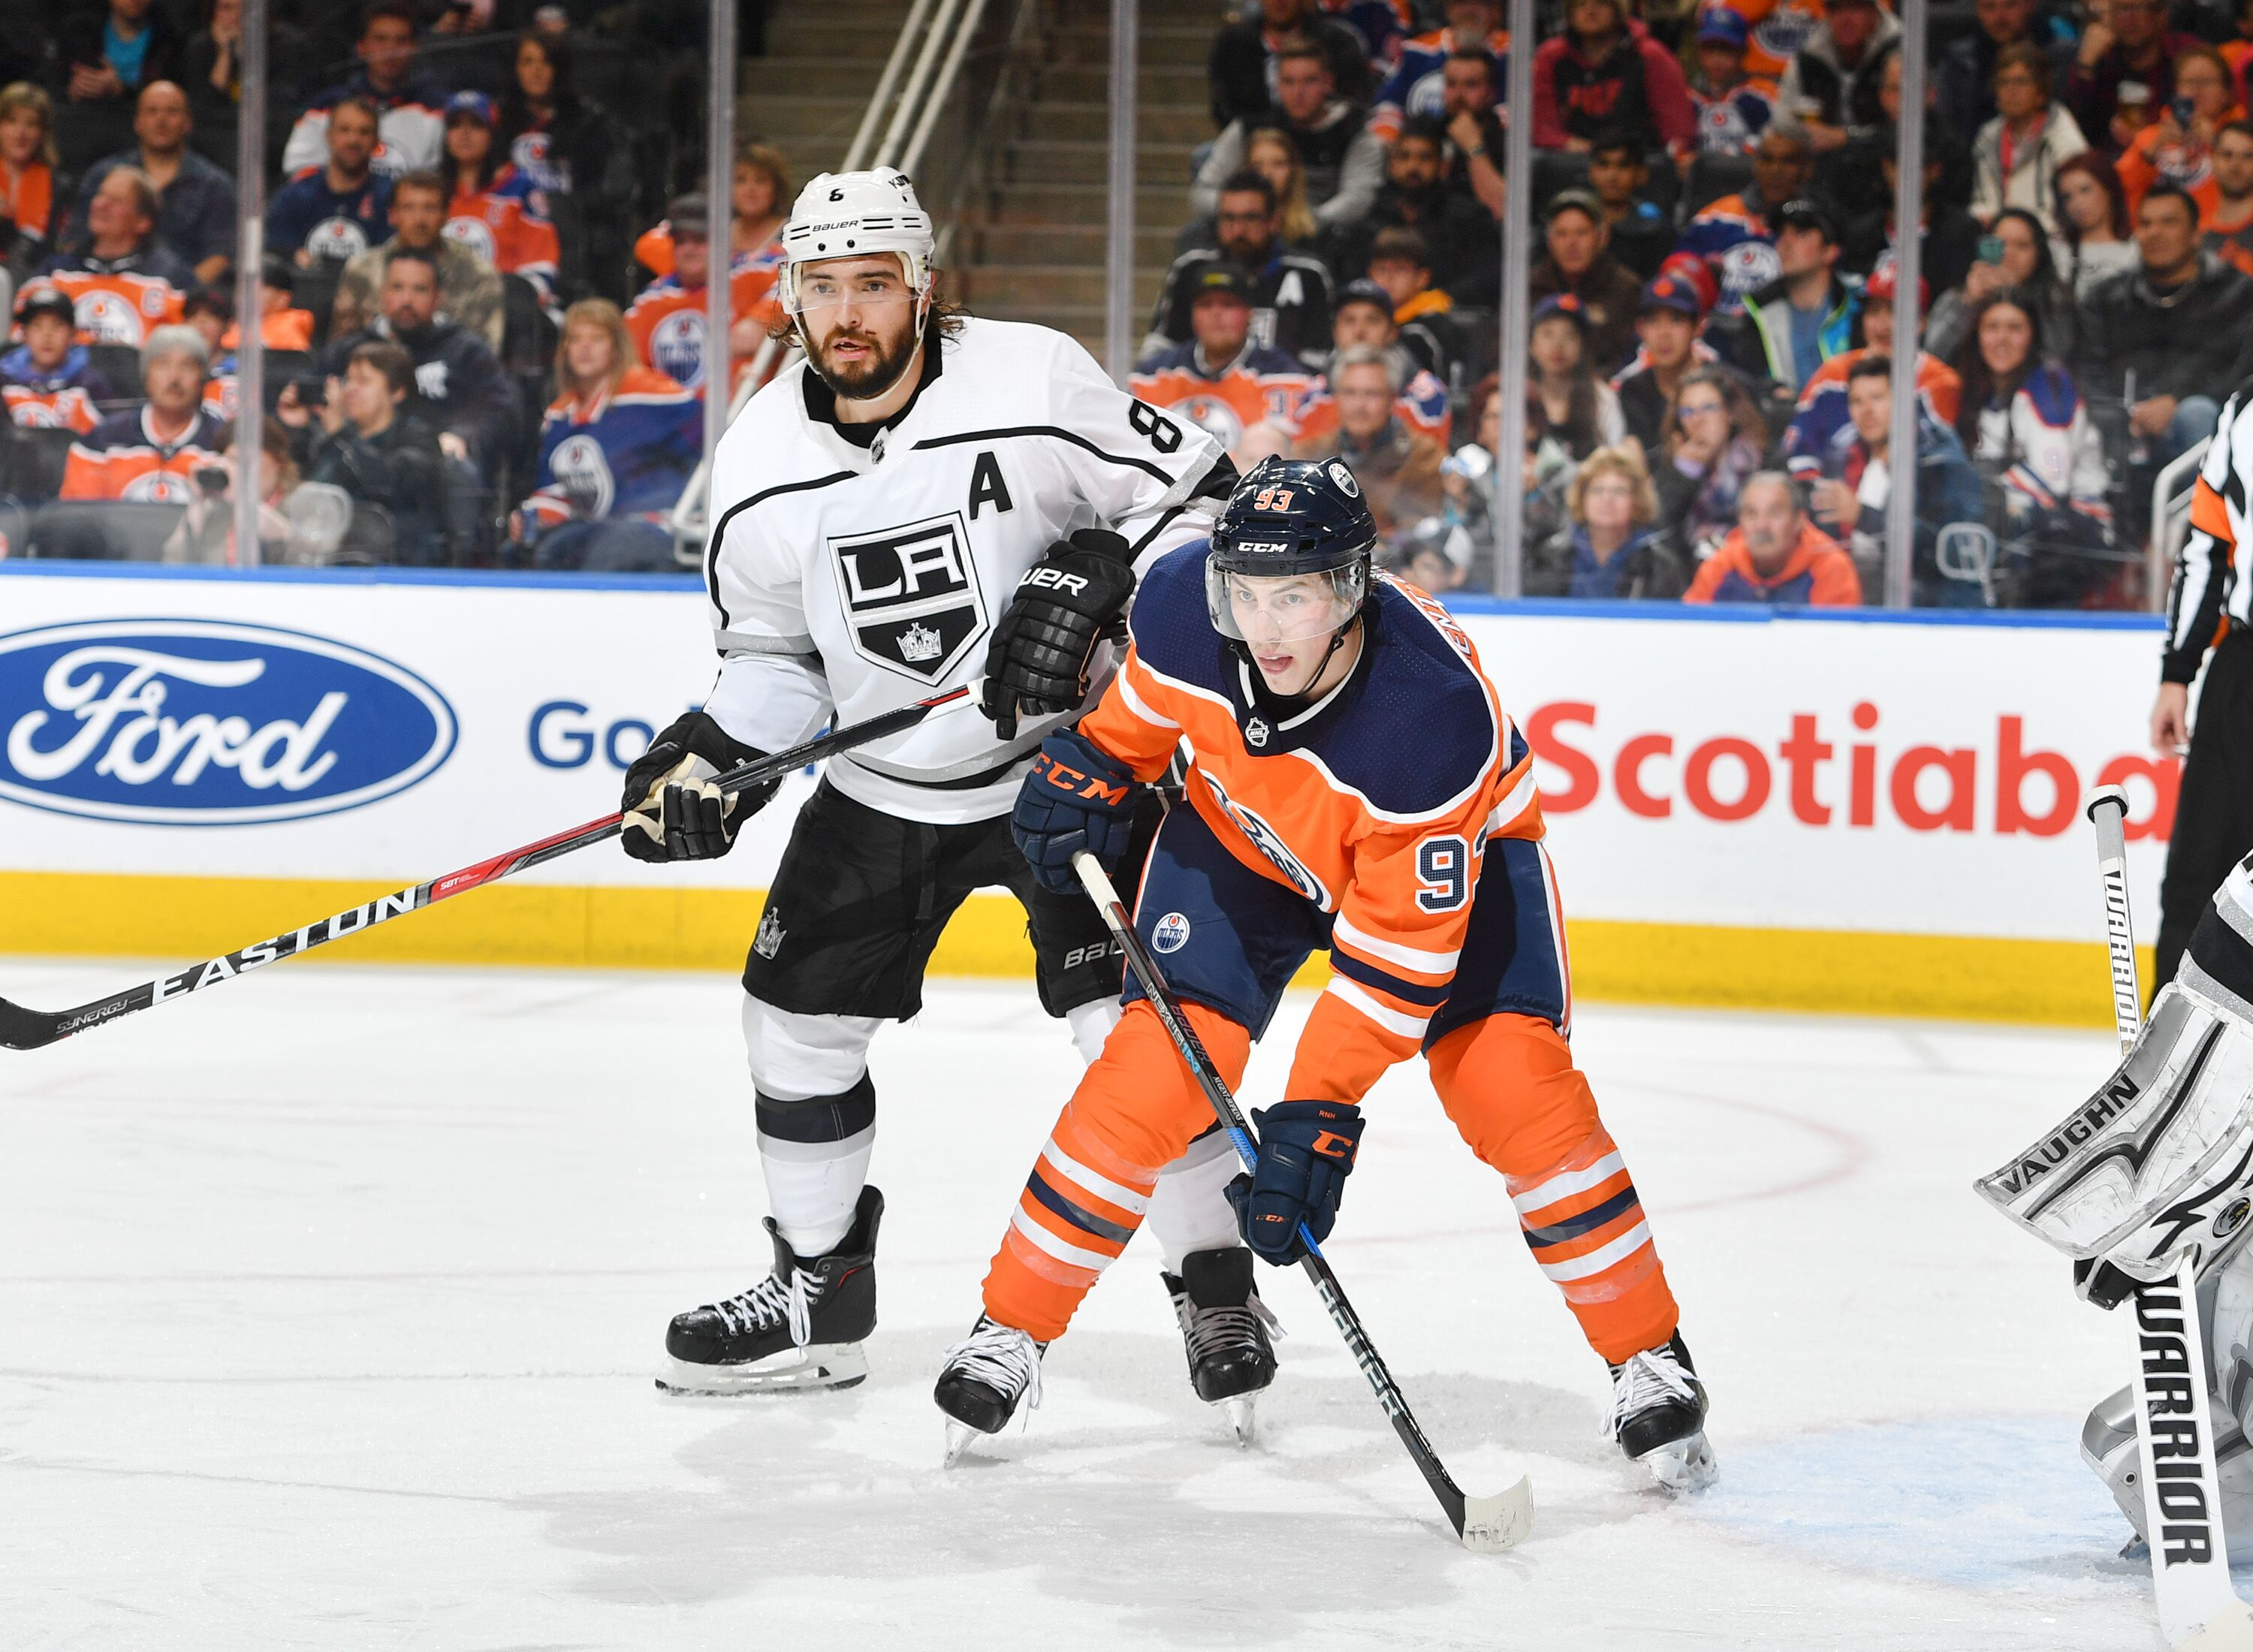 937563132-los-angeles-kings-v-edmonton-oilers.jpg